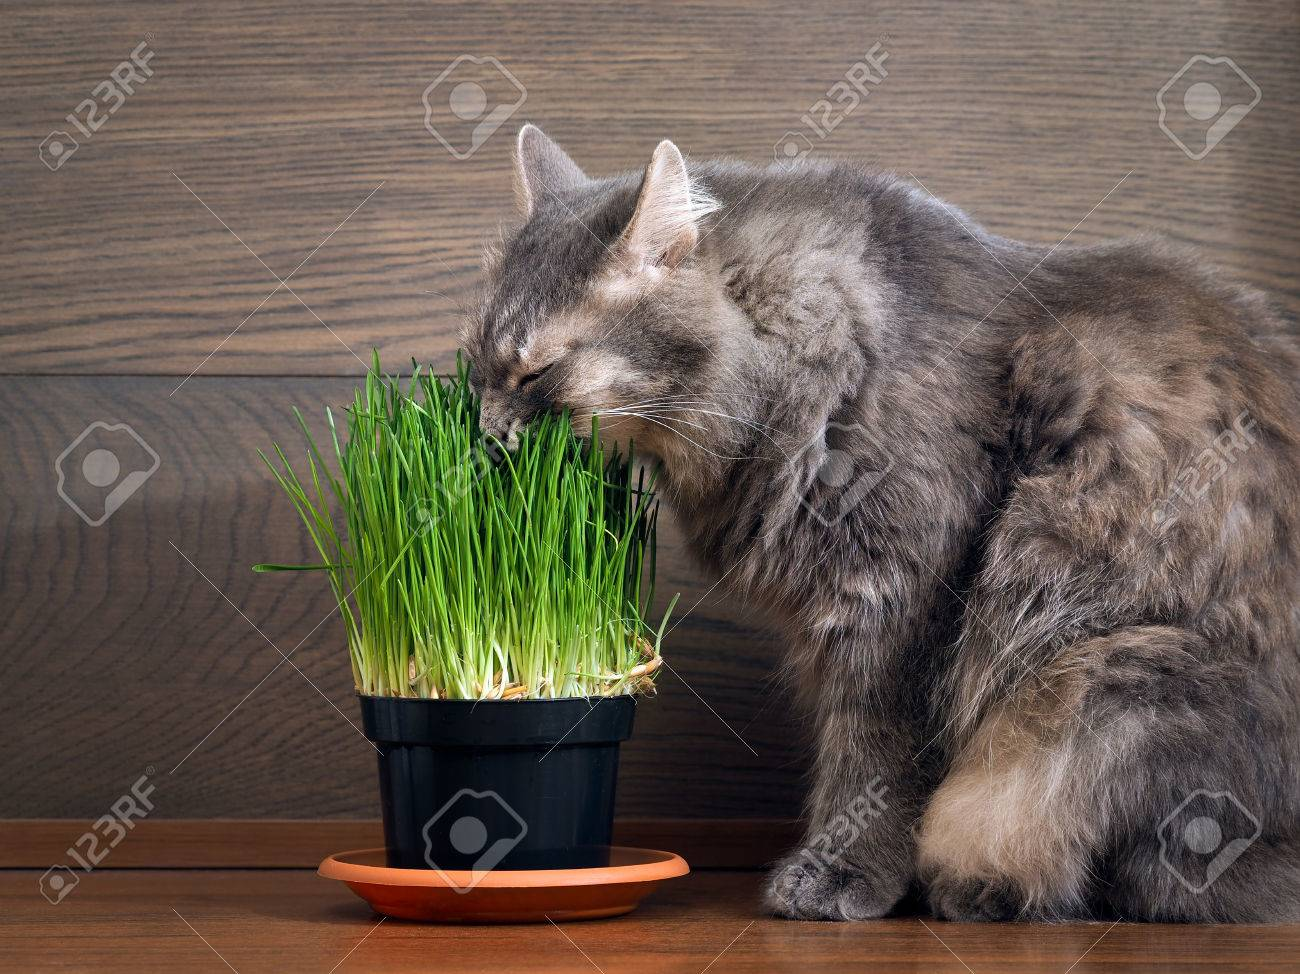 The cat is eating green grass - germinated oats in the pot - 61253620